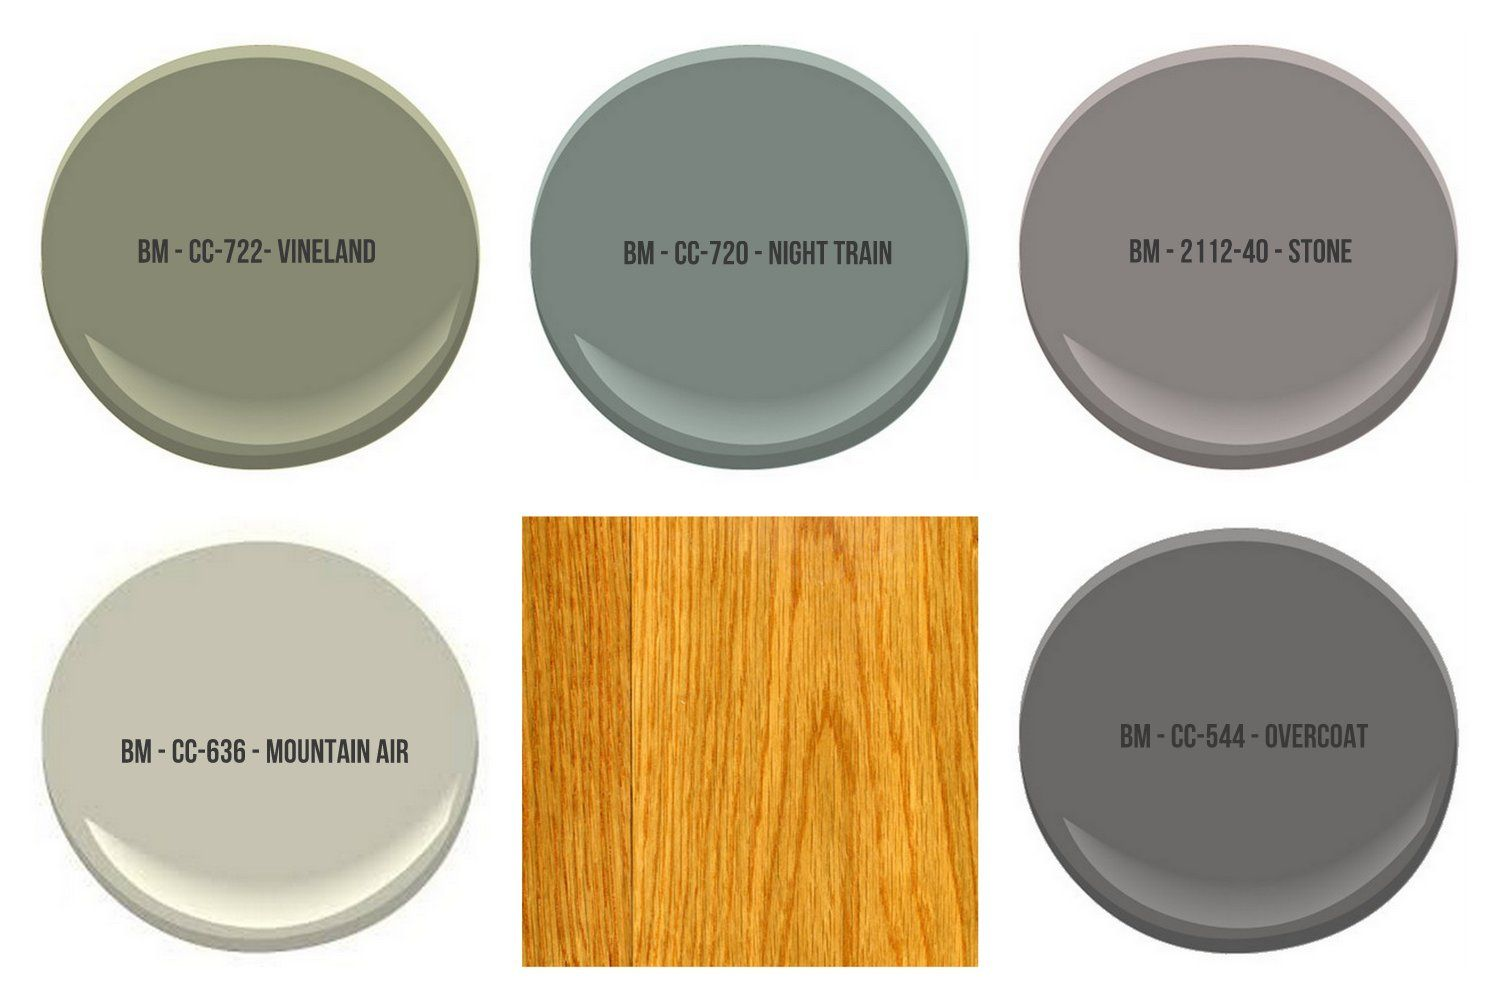 The Best Wall Paint Colors To Go With Honey Oak   Dream ...